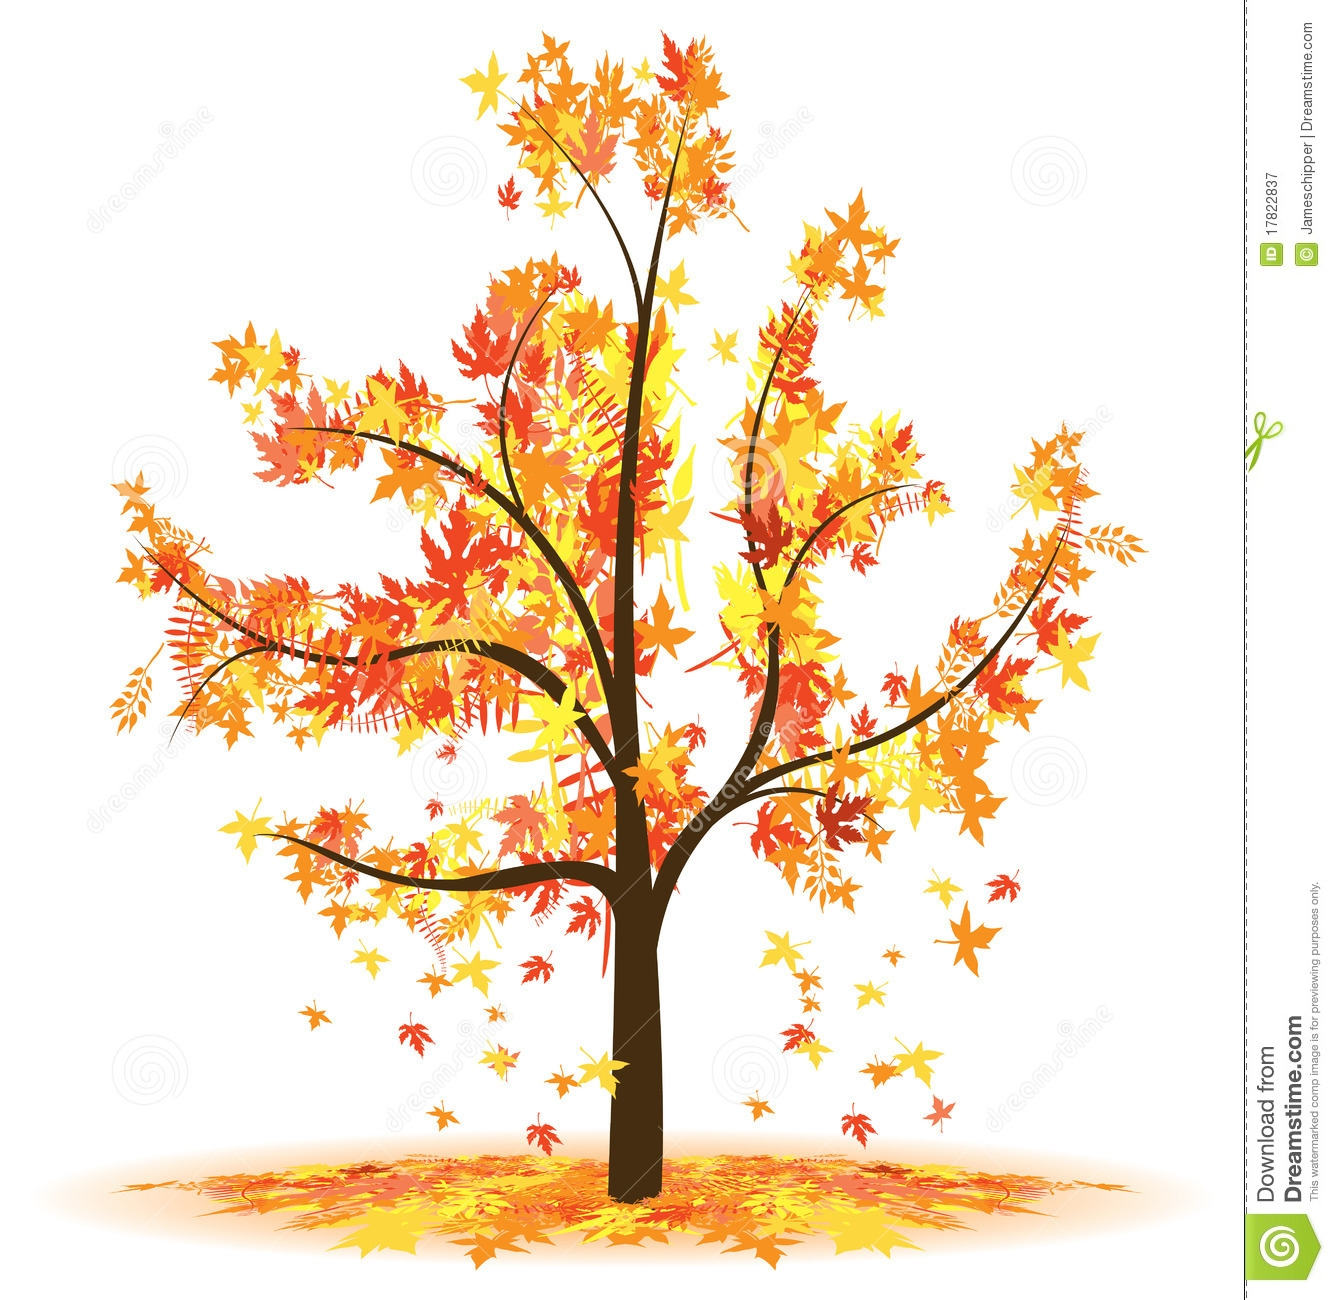 Autumn tree clip art free.